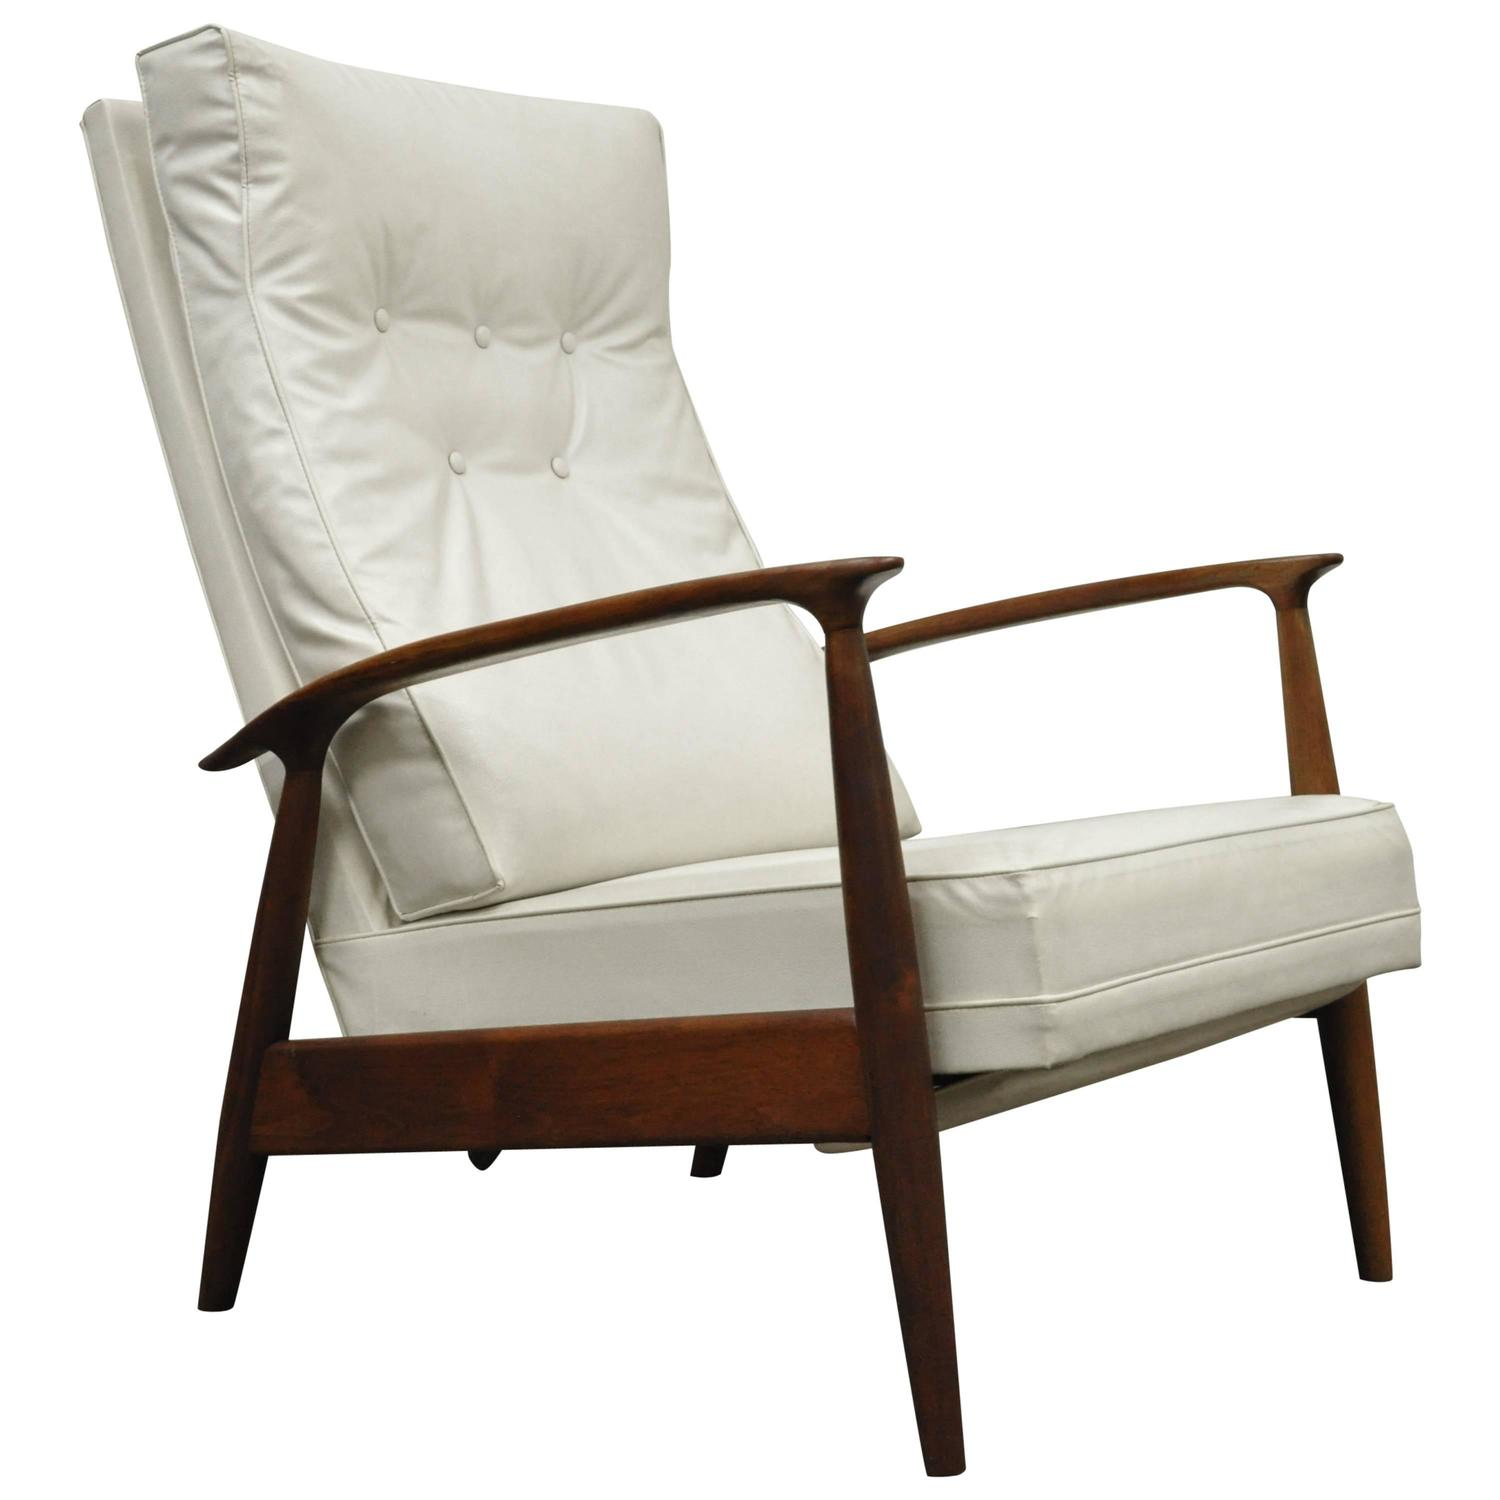 Milo Baughman For James Inc Thayer Coggin Sculpted Walnut Recliner Lounge  Chair For Sale At 1stdibs